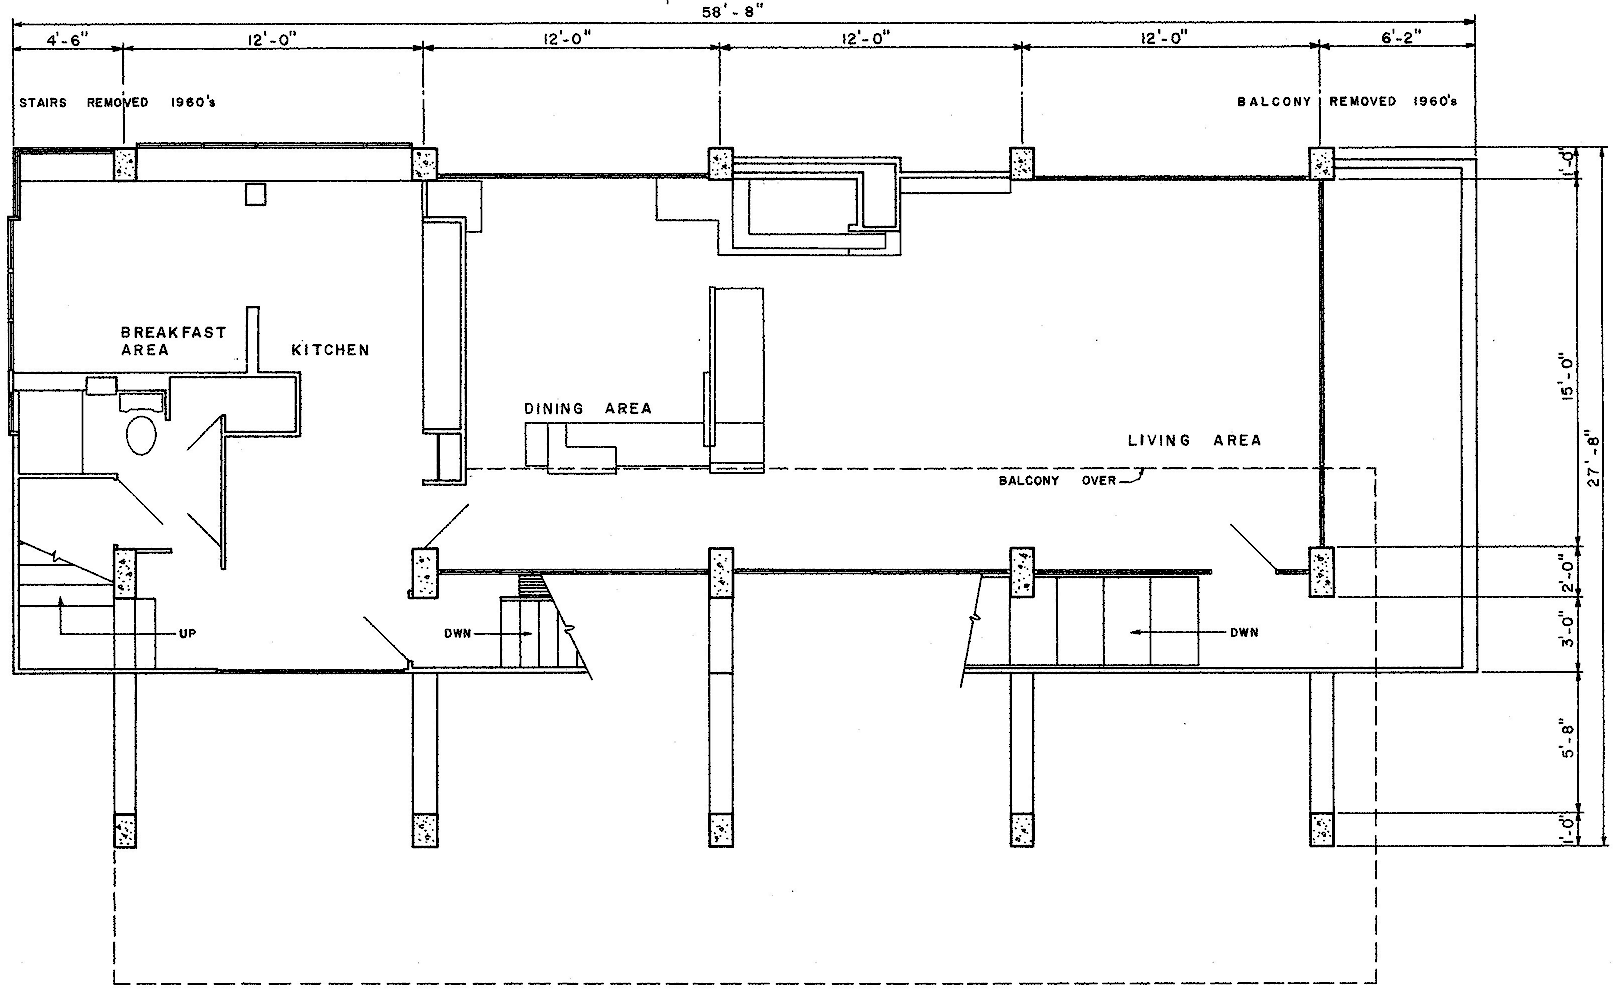 Wg Küchenplan Datei Lovell Beach House Drawing Png Wikipedia